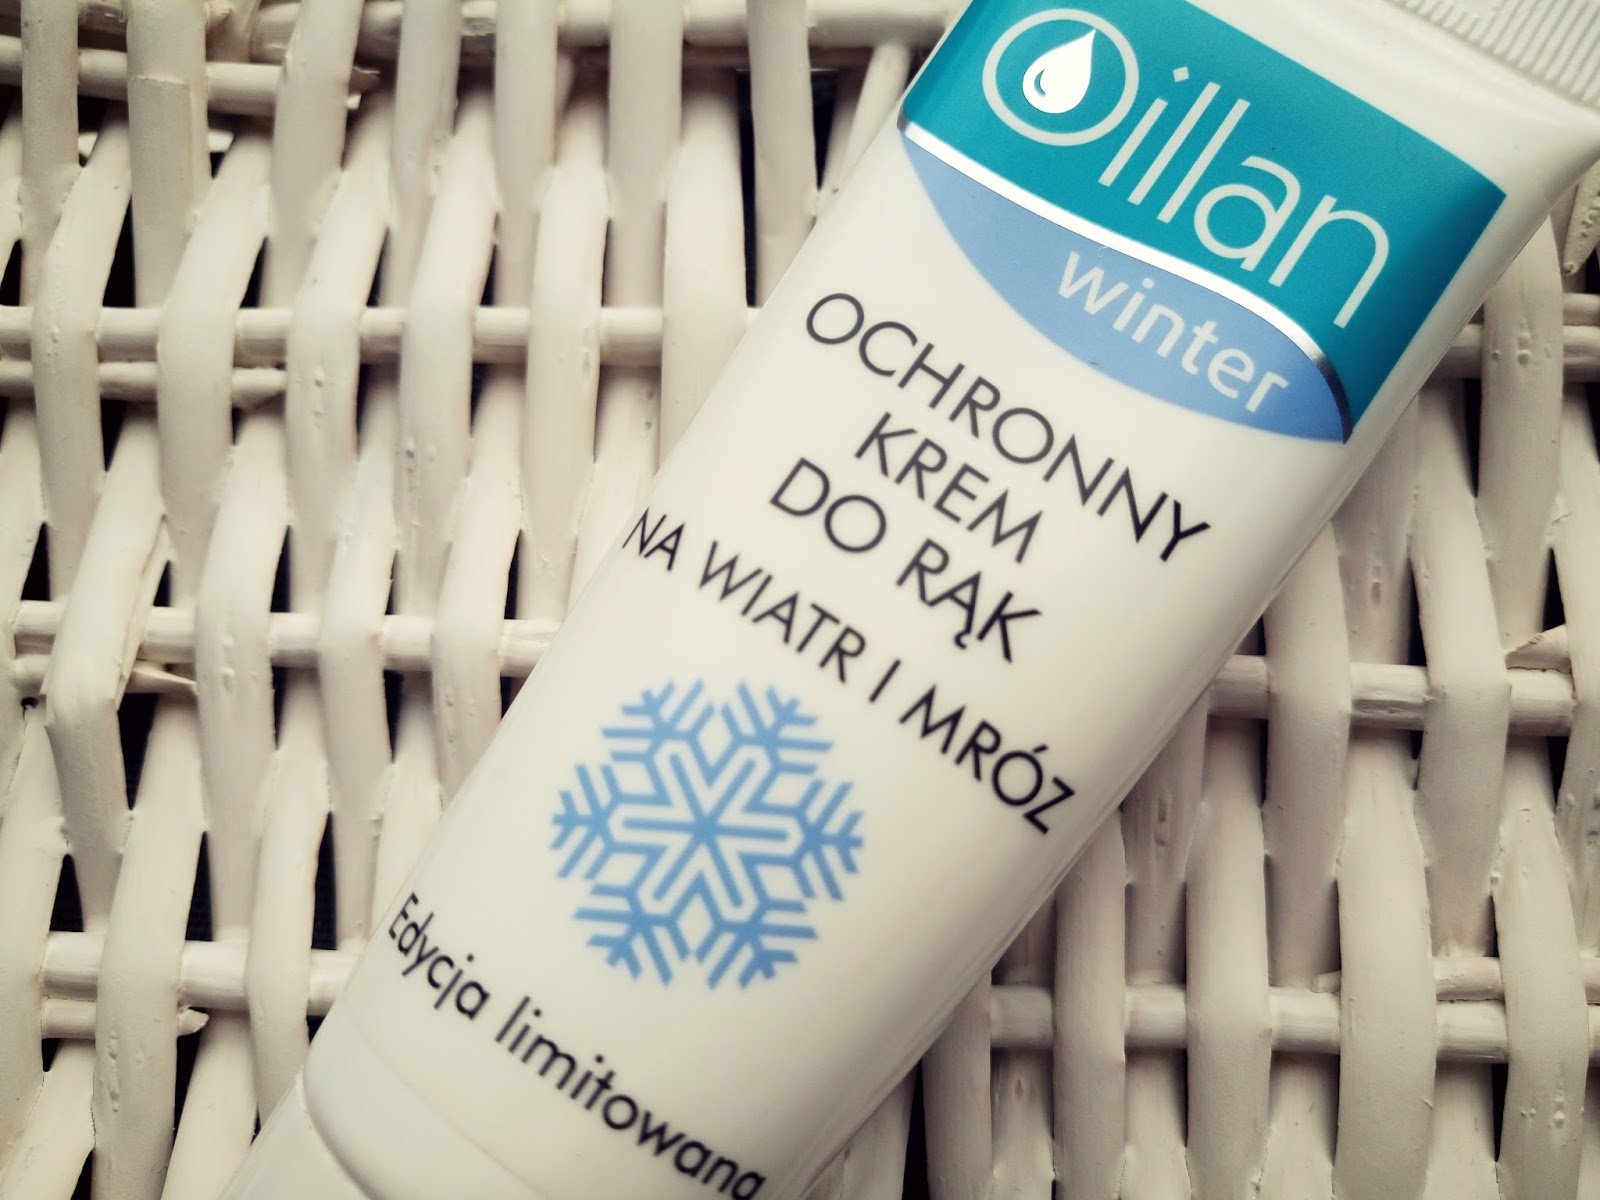 Oillan Winter Ochronny krem do rąk na wiatr i mróz https://coloursof-beauty.blogspot.com/